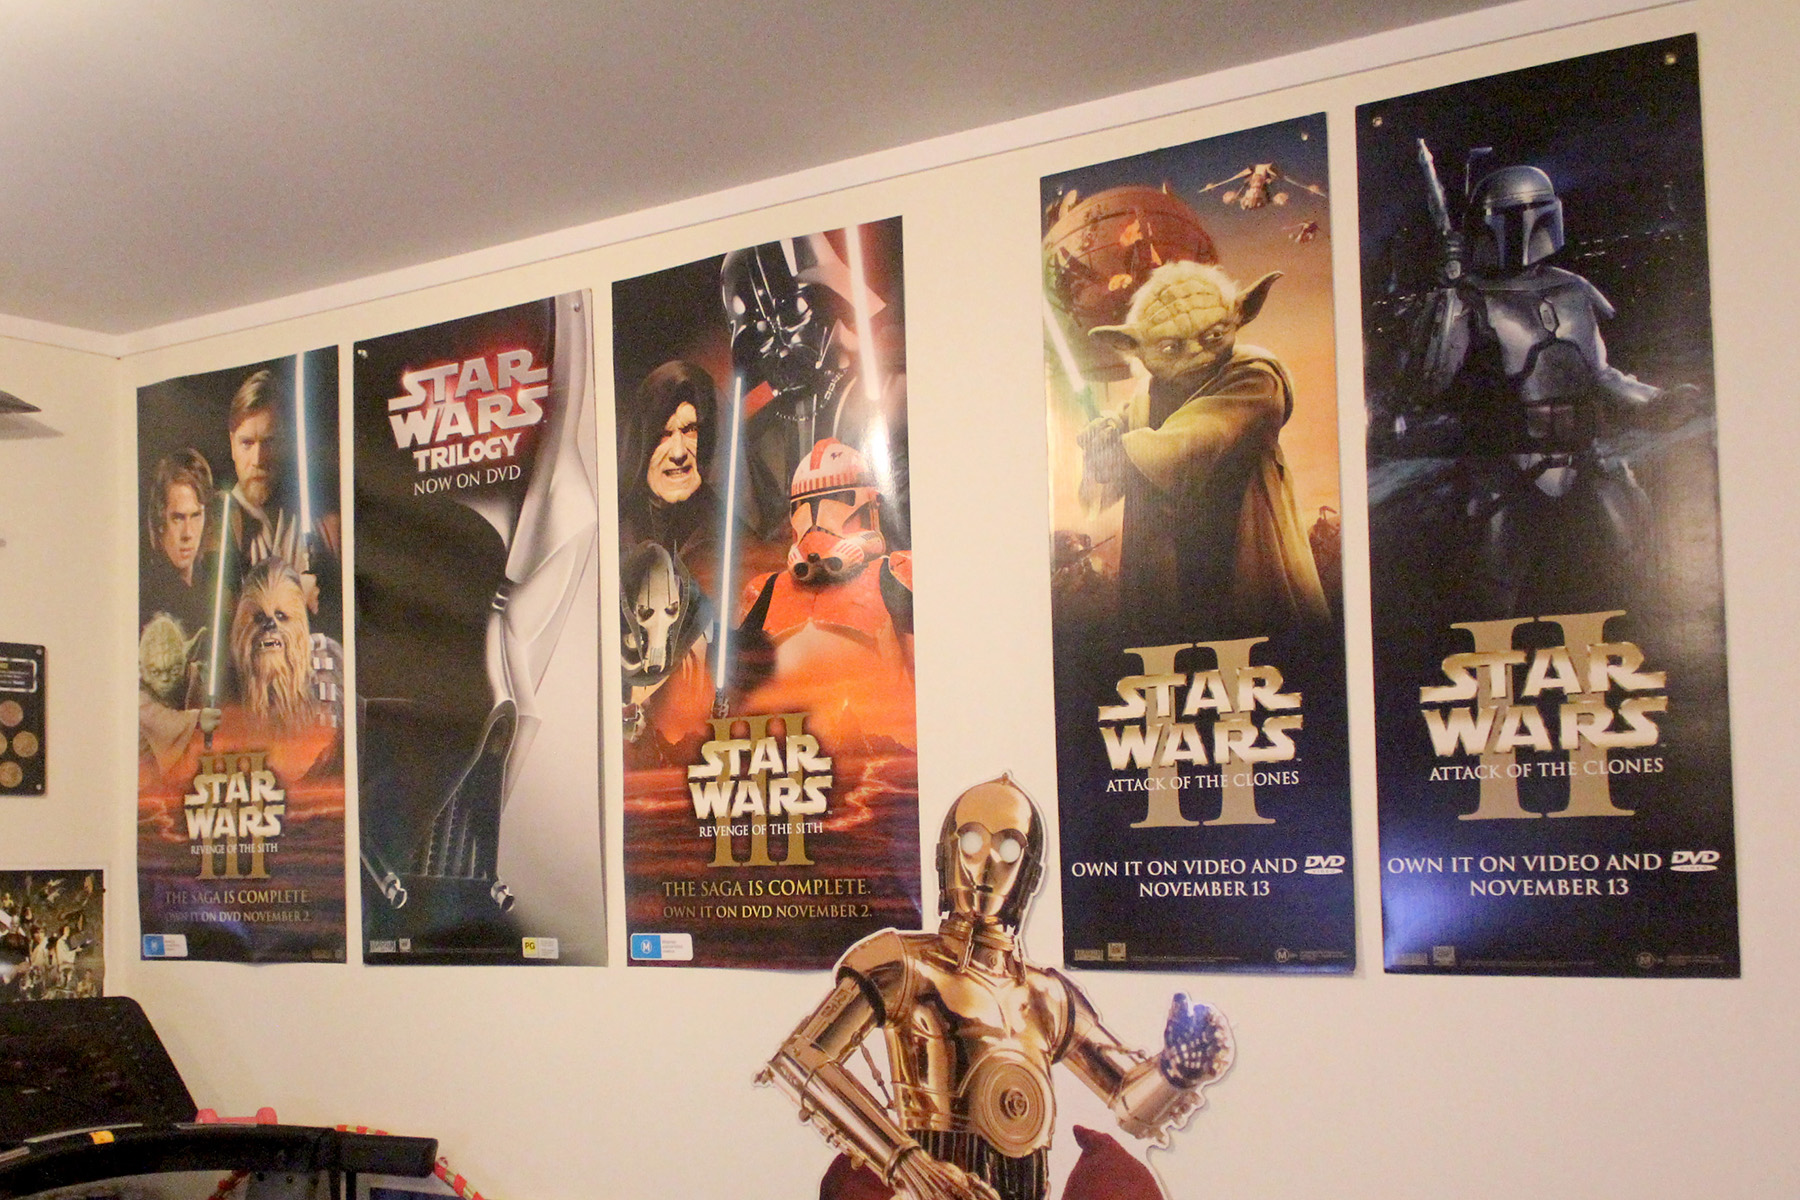 Star Wars DVD release posters